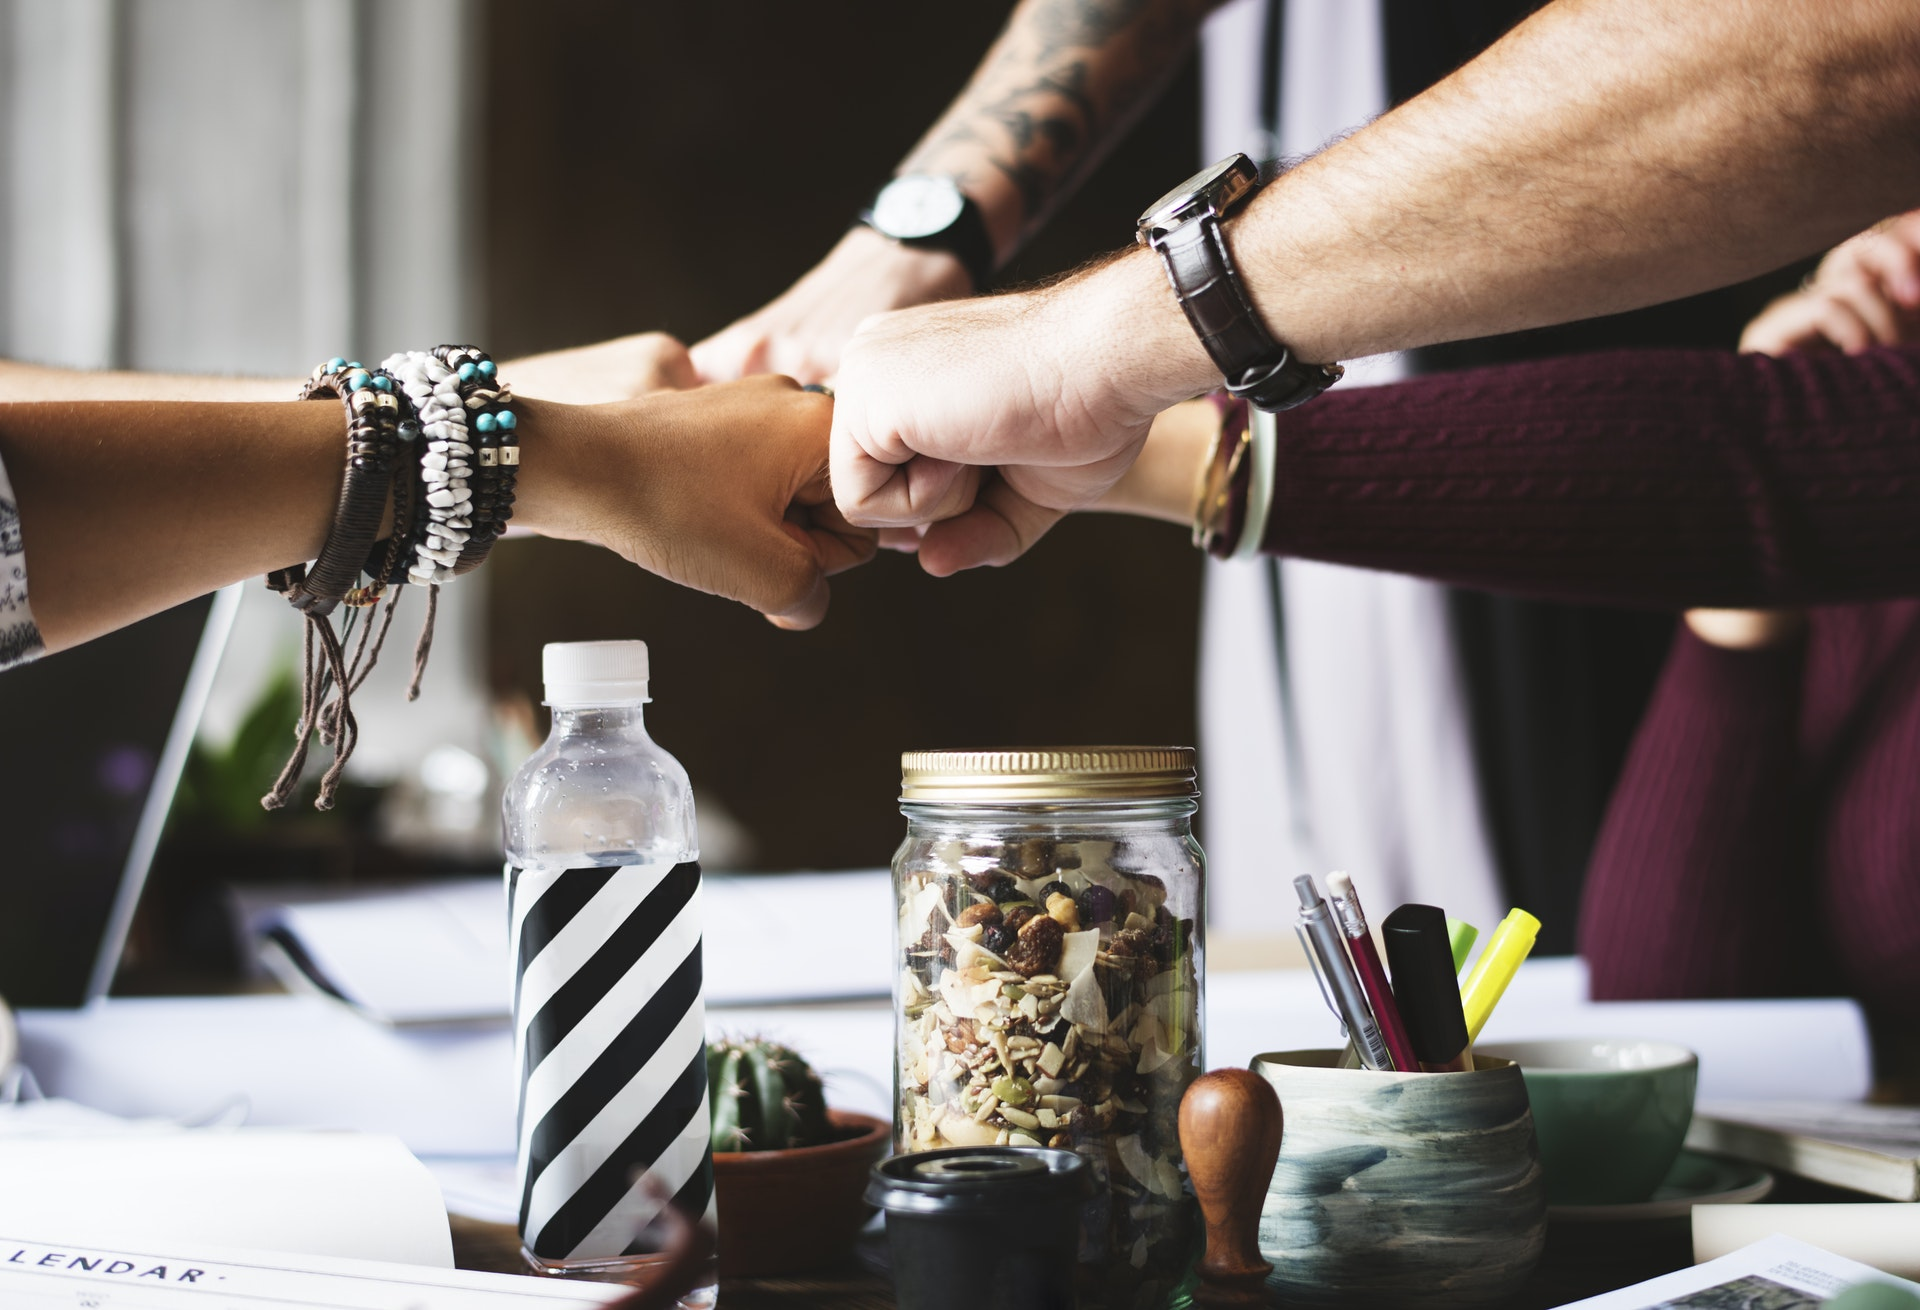 3 Simple Questions to get Marketing and Sales Working Together